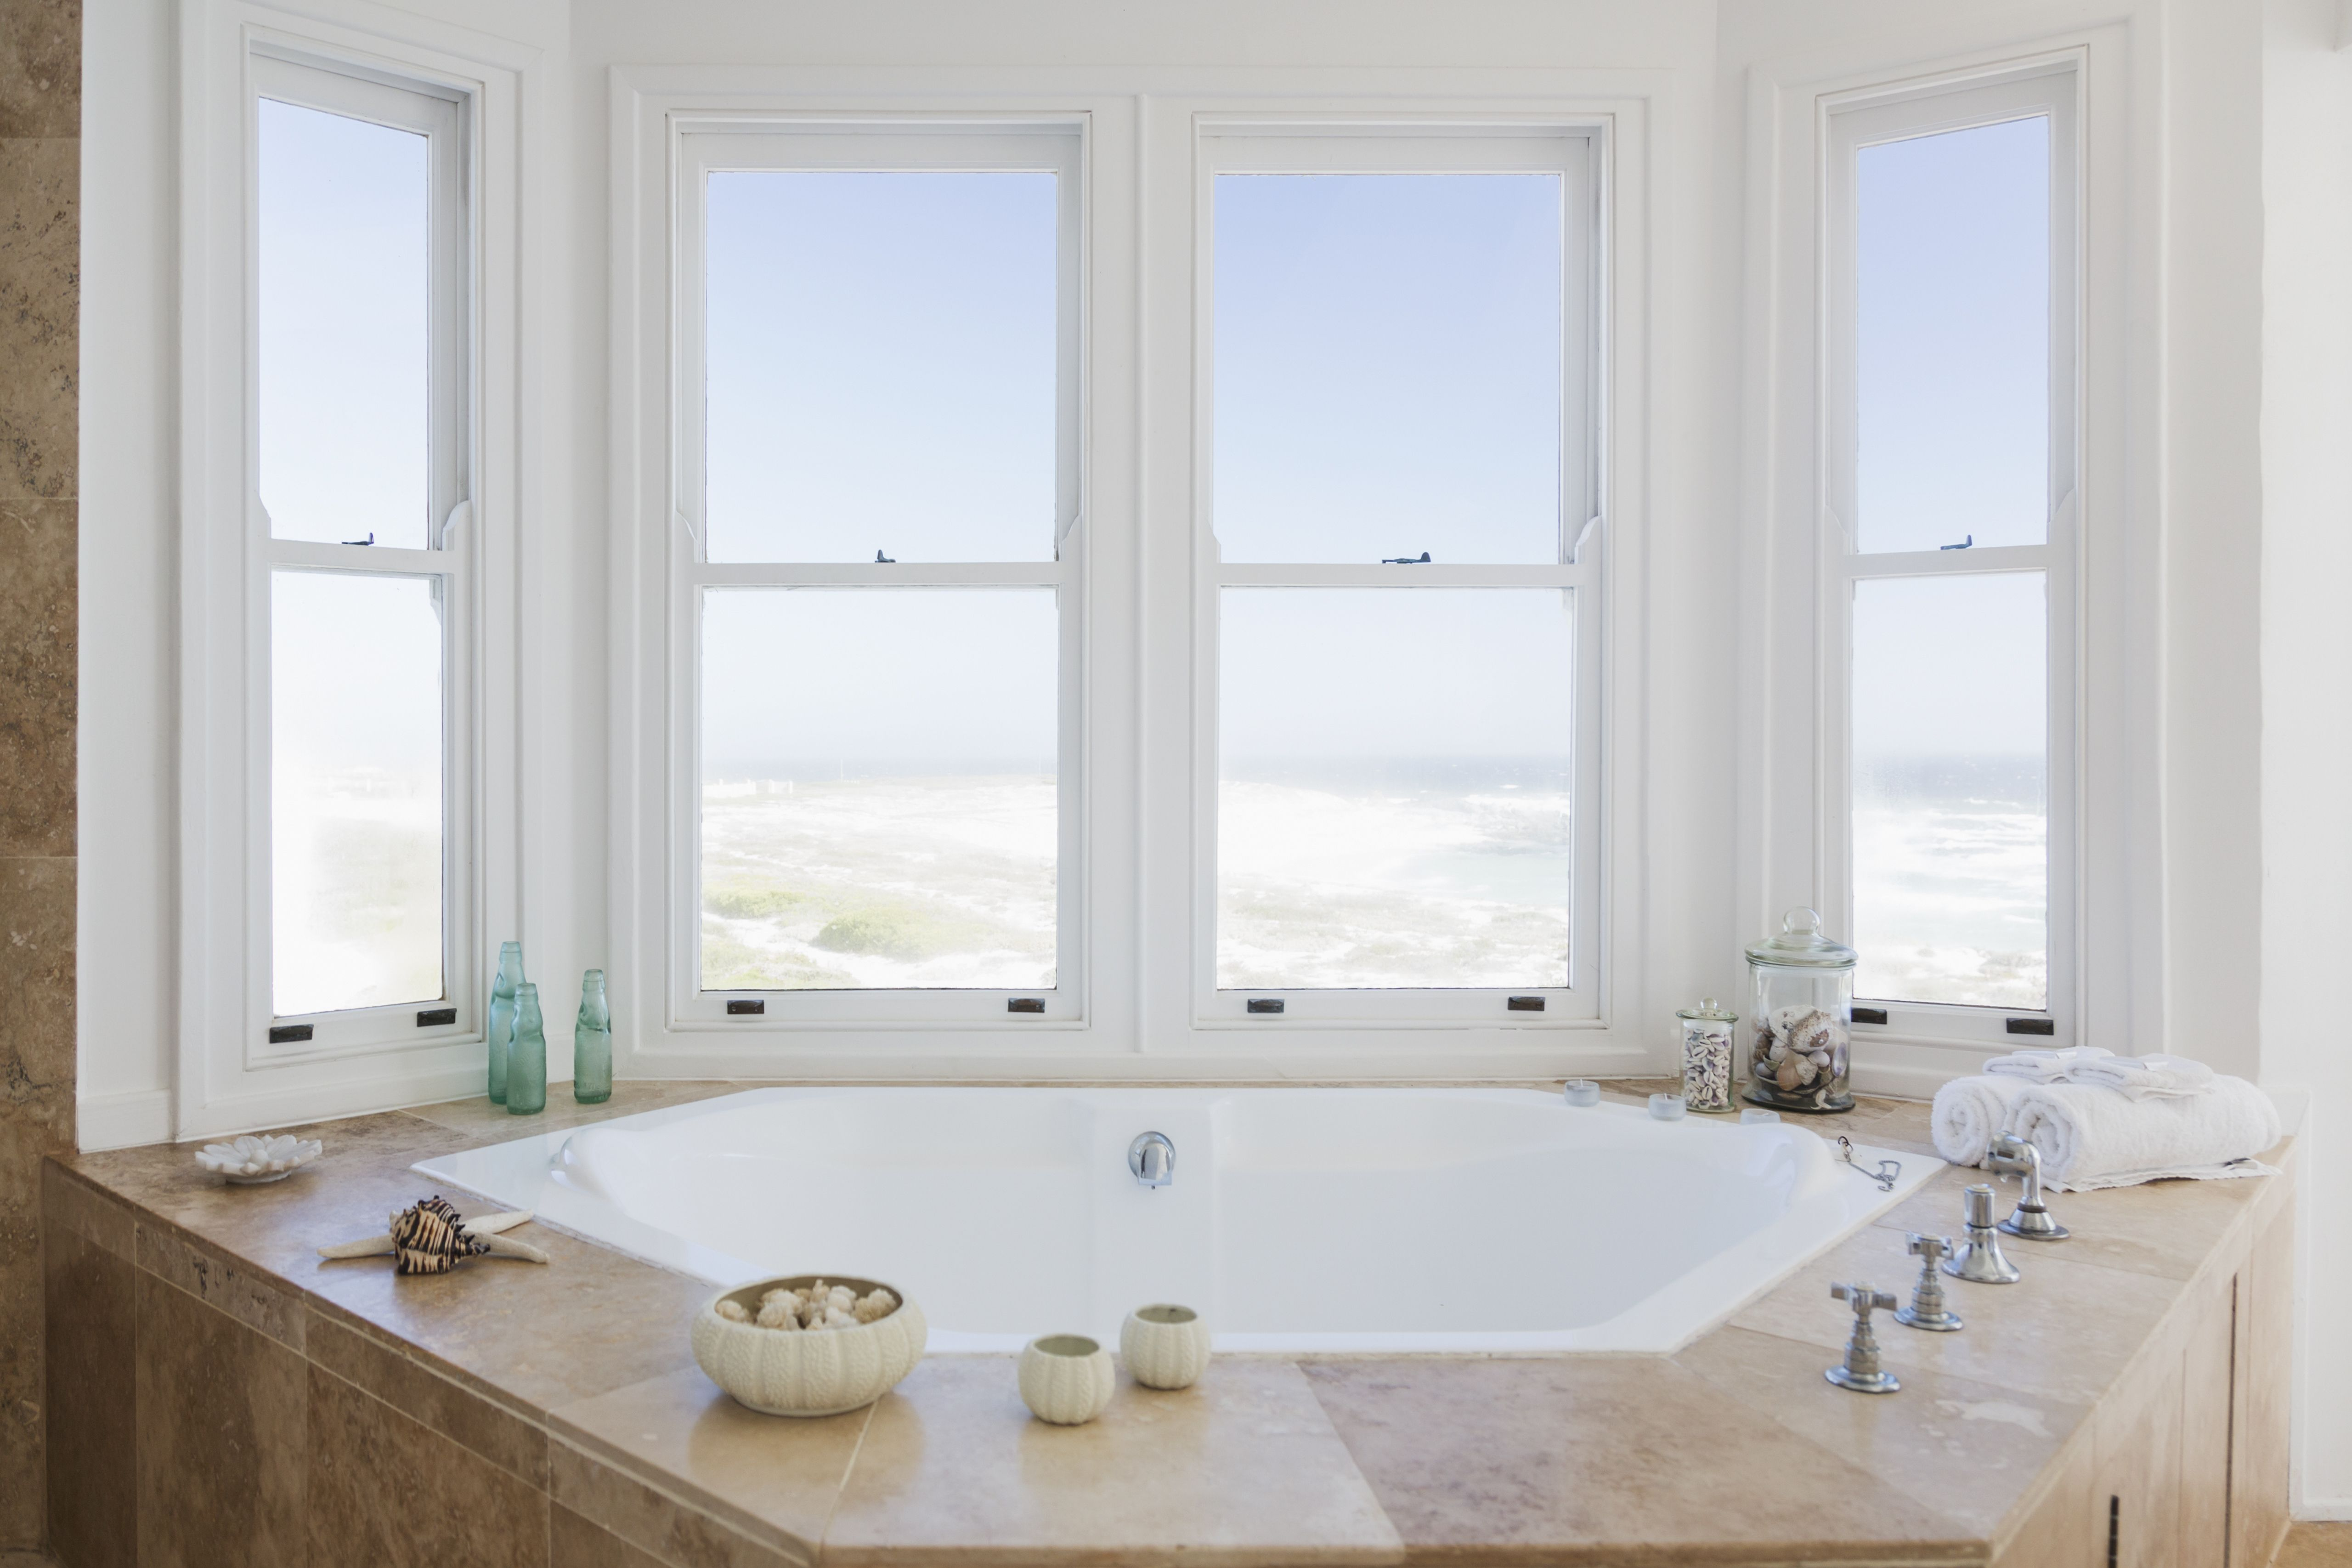 How To Clean Whirlpool Tub Jets Whirlpool Tub Cleaning Hot Tub